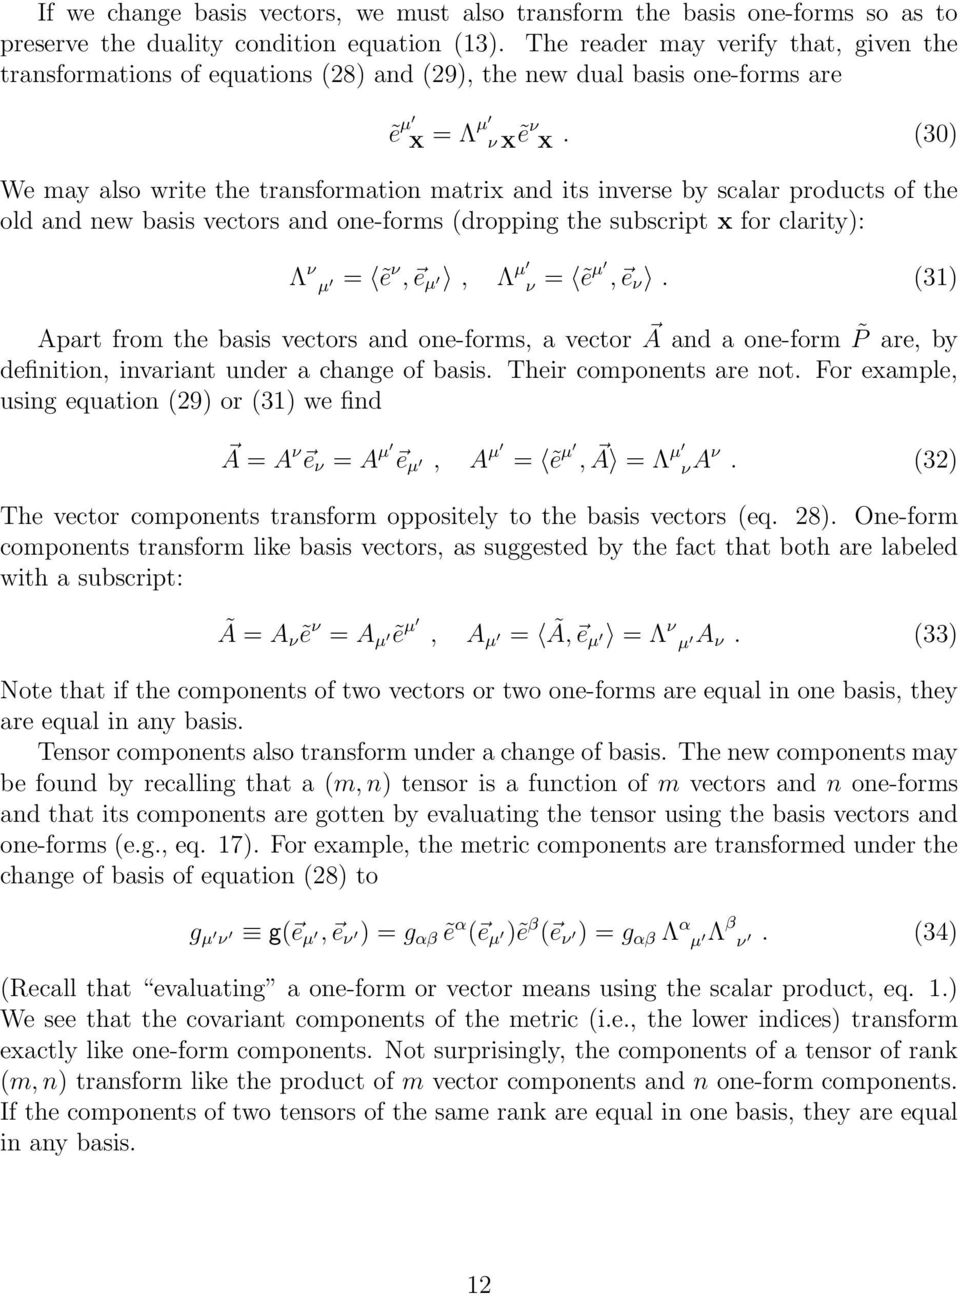 (30) We may also write the transformation matrix and its inverse by scalar products of the old and new basis vectors and one-forms (dropping the subscript x for clarity): Λ ν µ = ẽν, e µ, Λ µ ν = ẽµ,